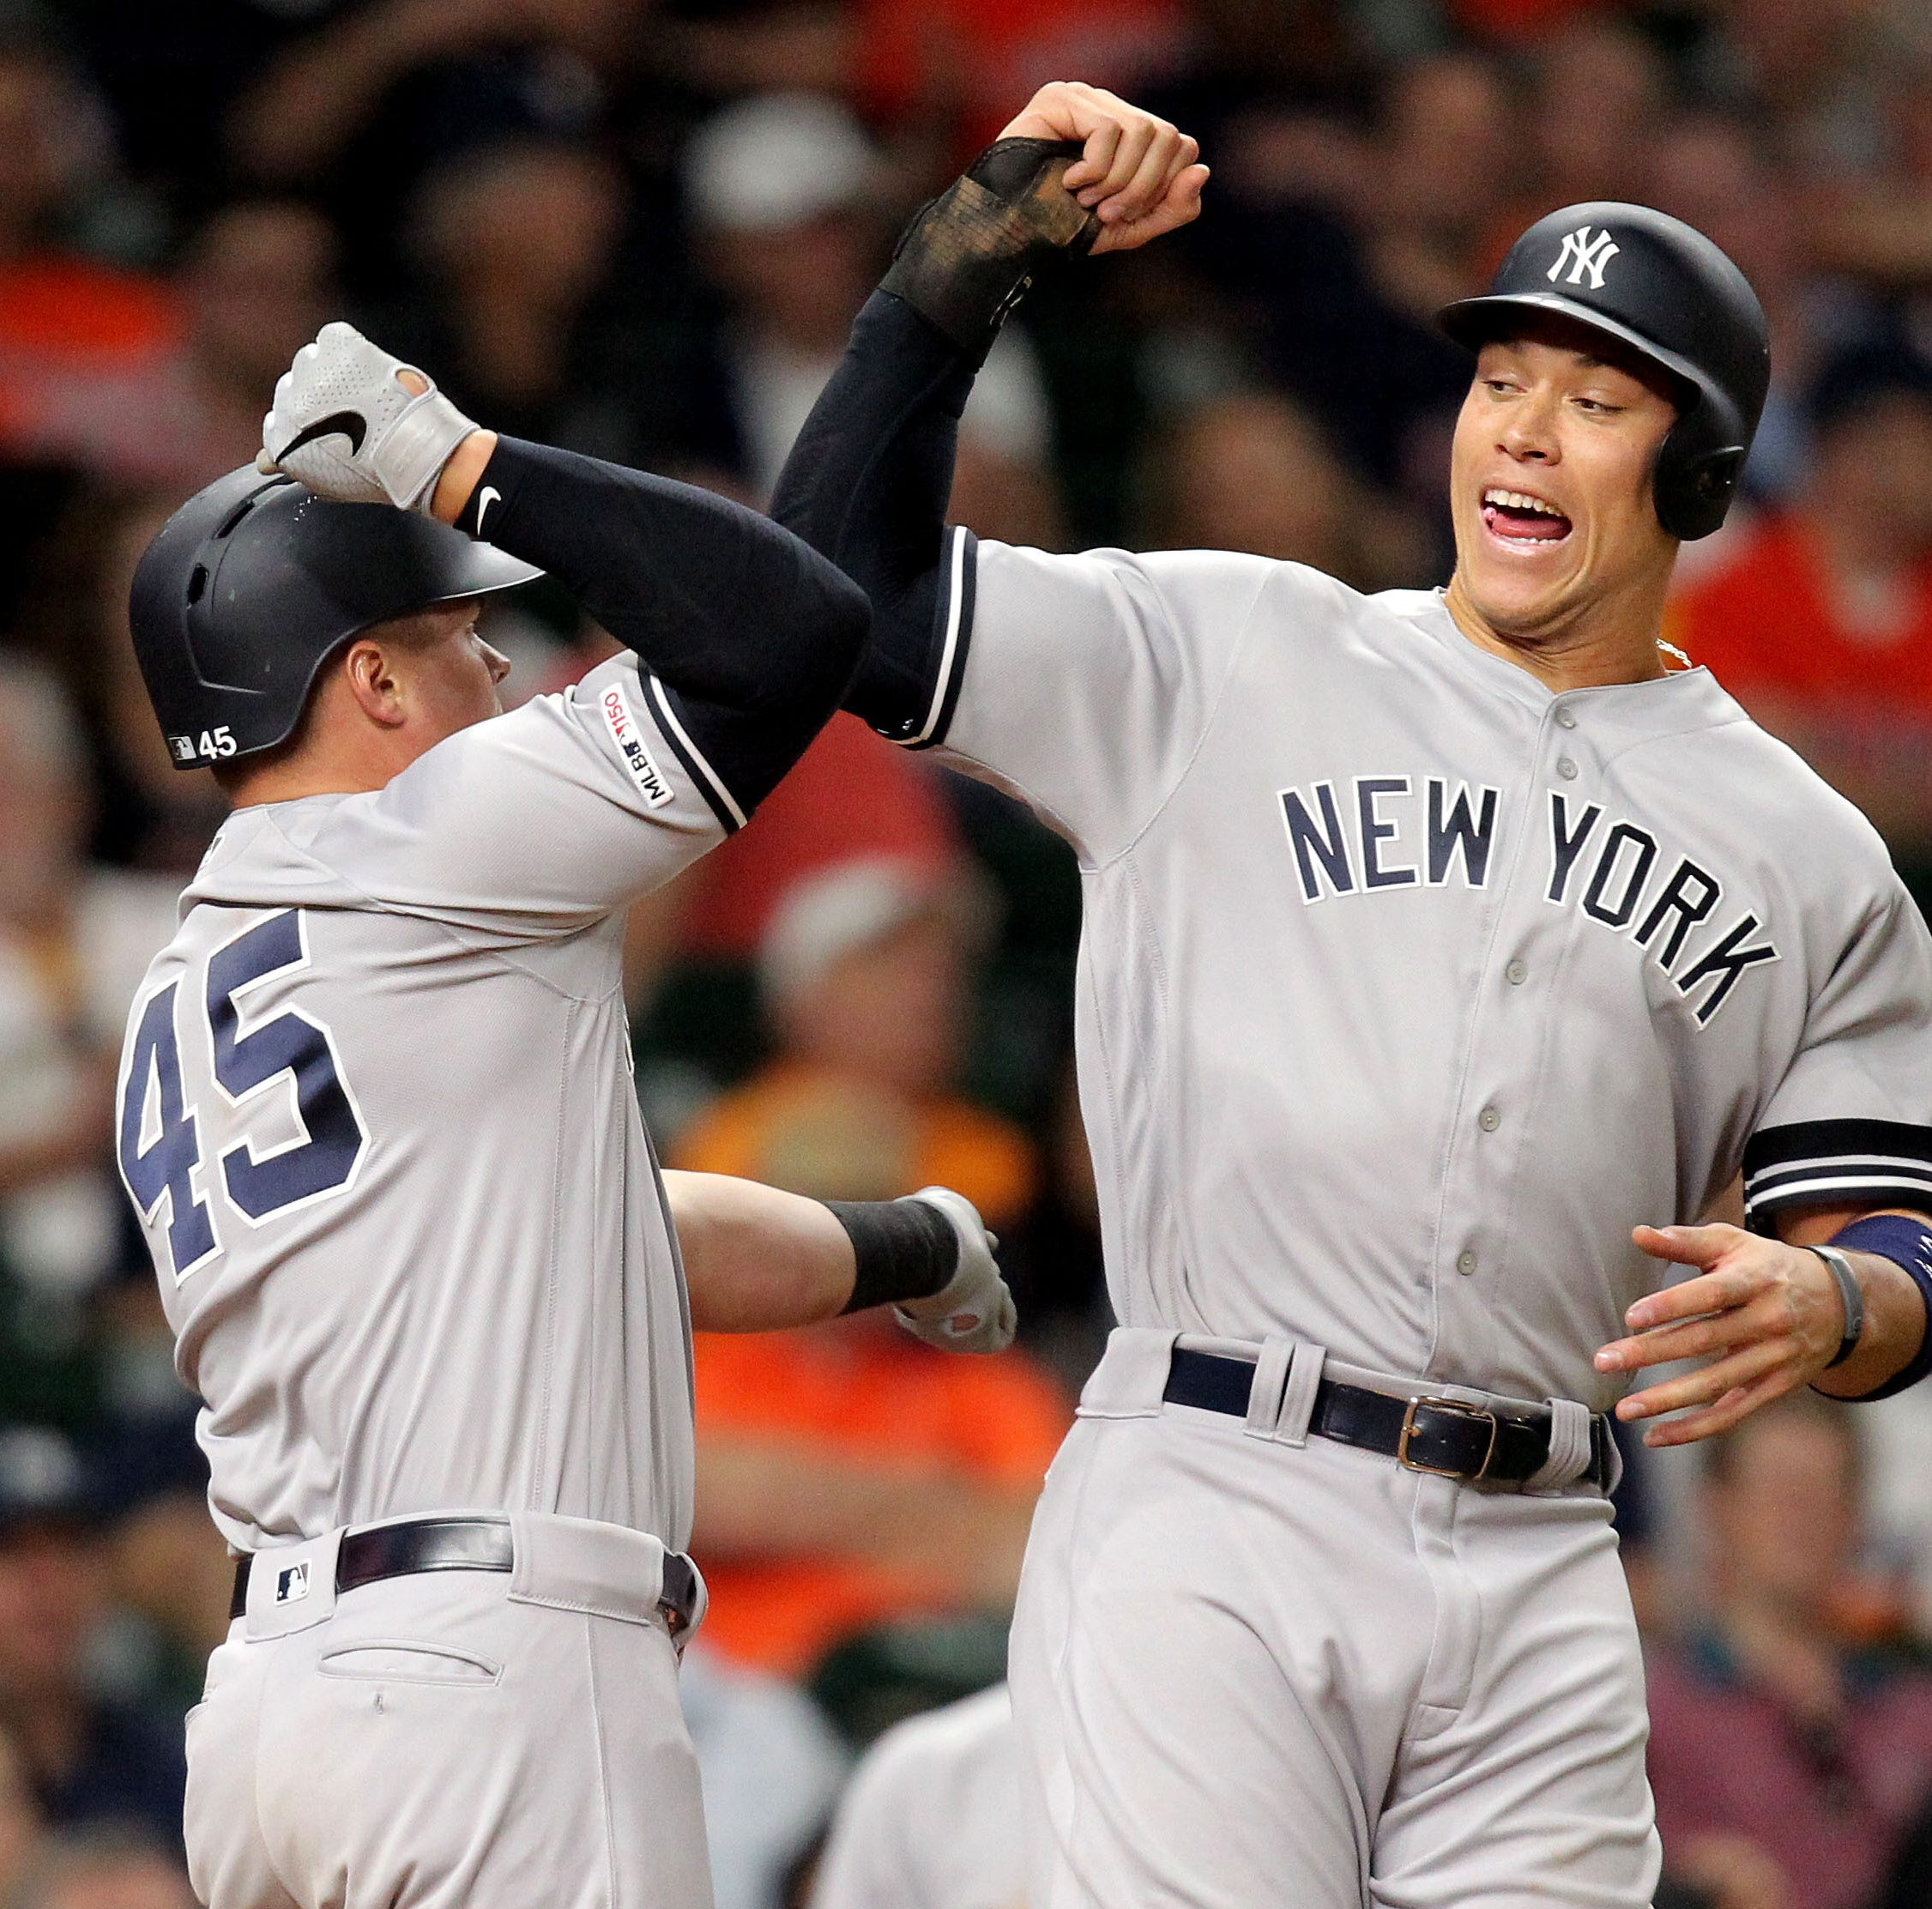 New York Yankees, Boston Red Sox lineups announced for Tuesday